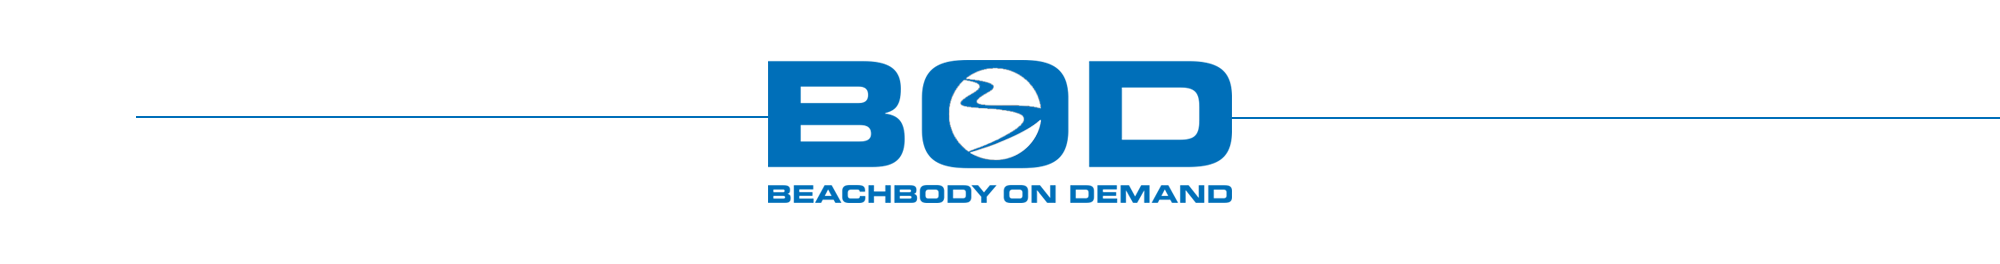 BOD-FOOTER